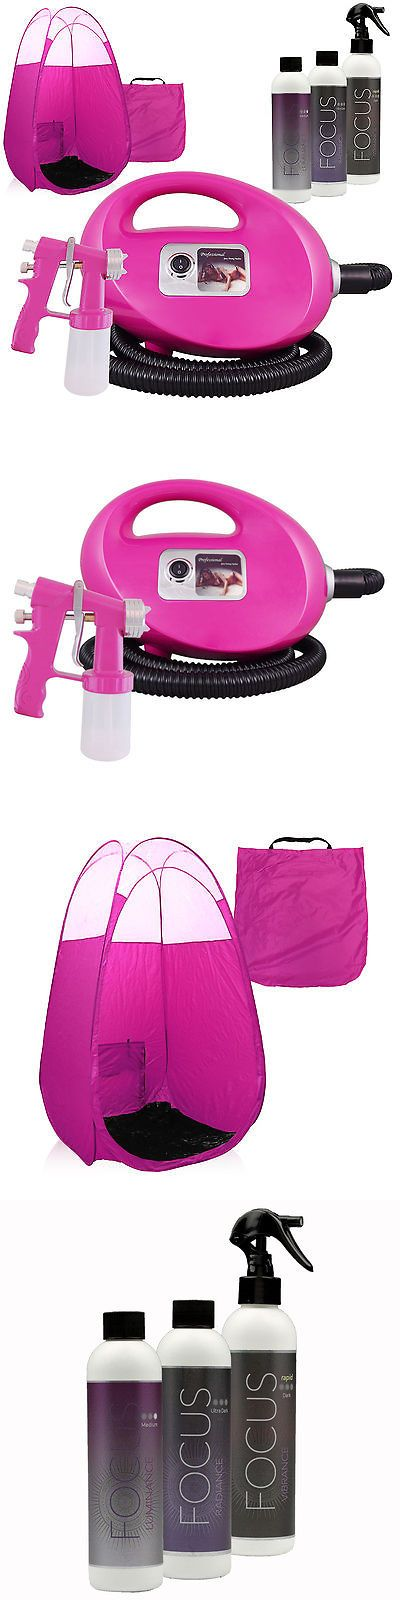 Airbrush Tanning Kits: Pink Fascination Fx Spray Tan Kit With Tanning Solutions And Pink Tent -> BUY IT NOW ONLY: $219 on eBay!